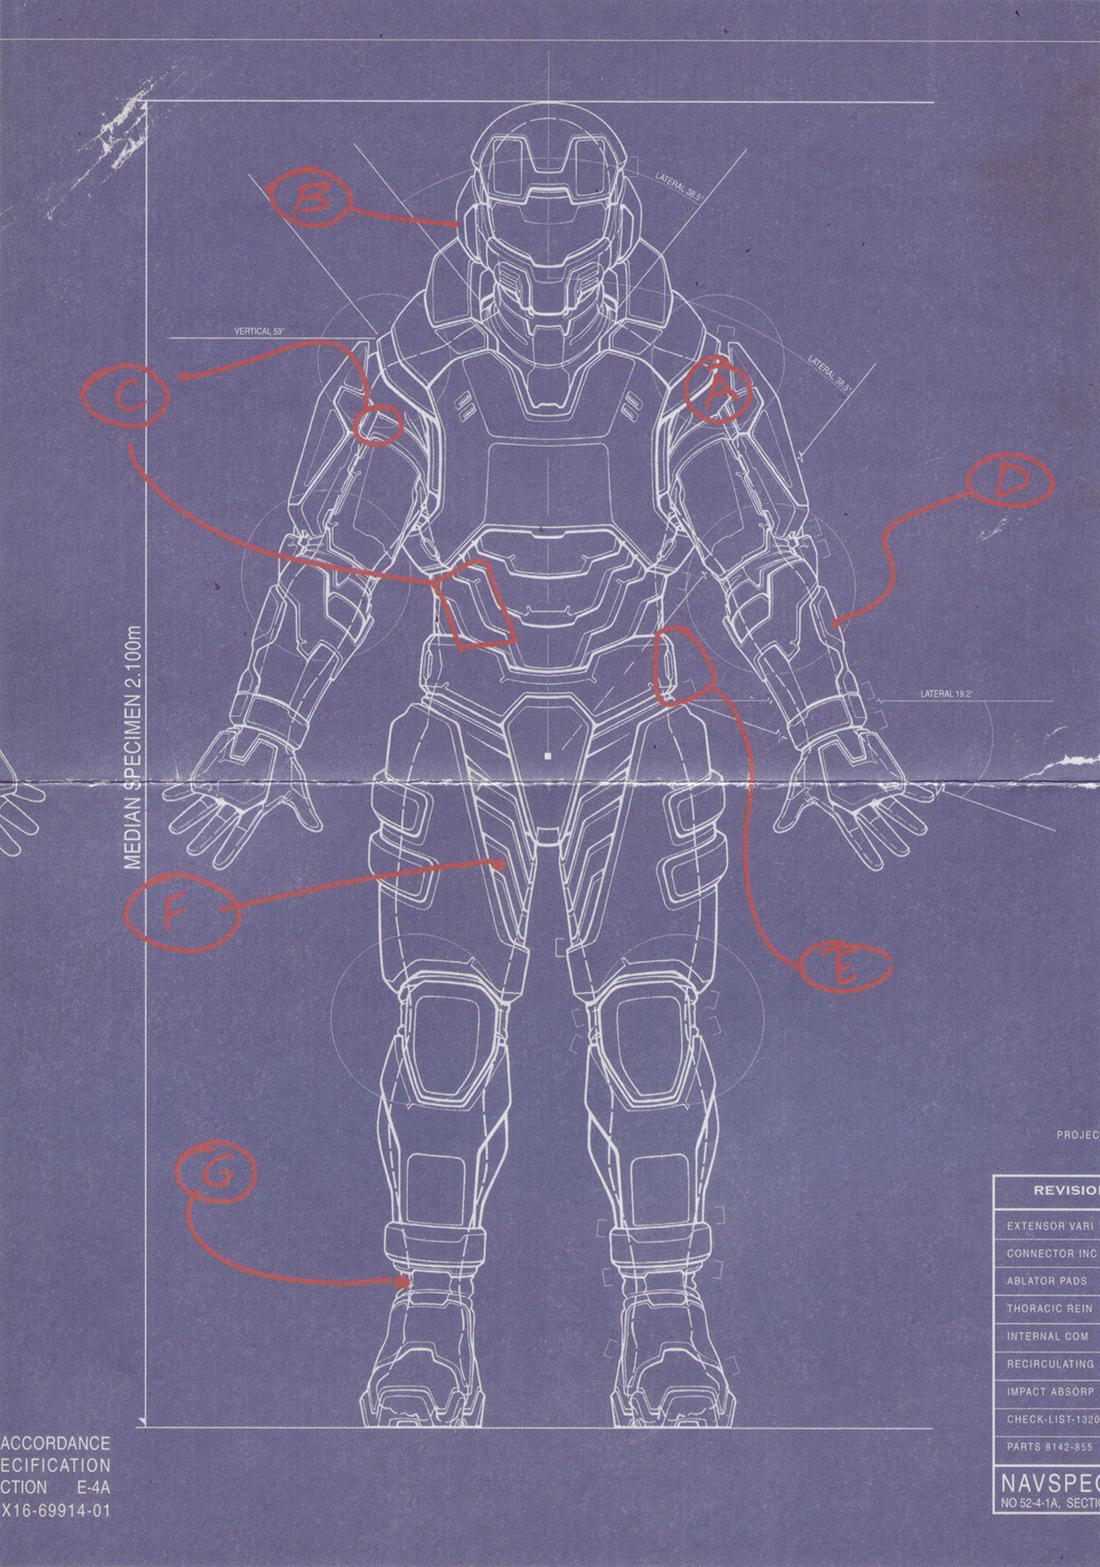 schematic 2 blueprint the wiring diagram image mark iv schematic halo nation fandom powered by wikia schematic